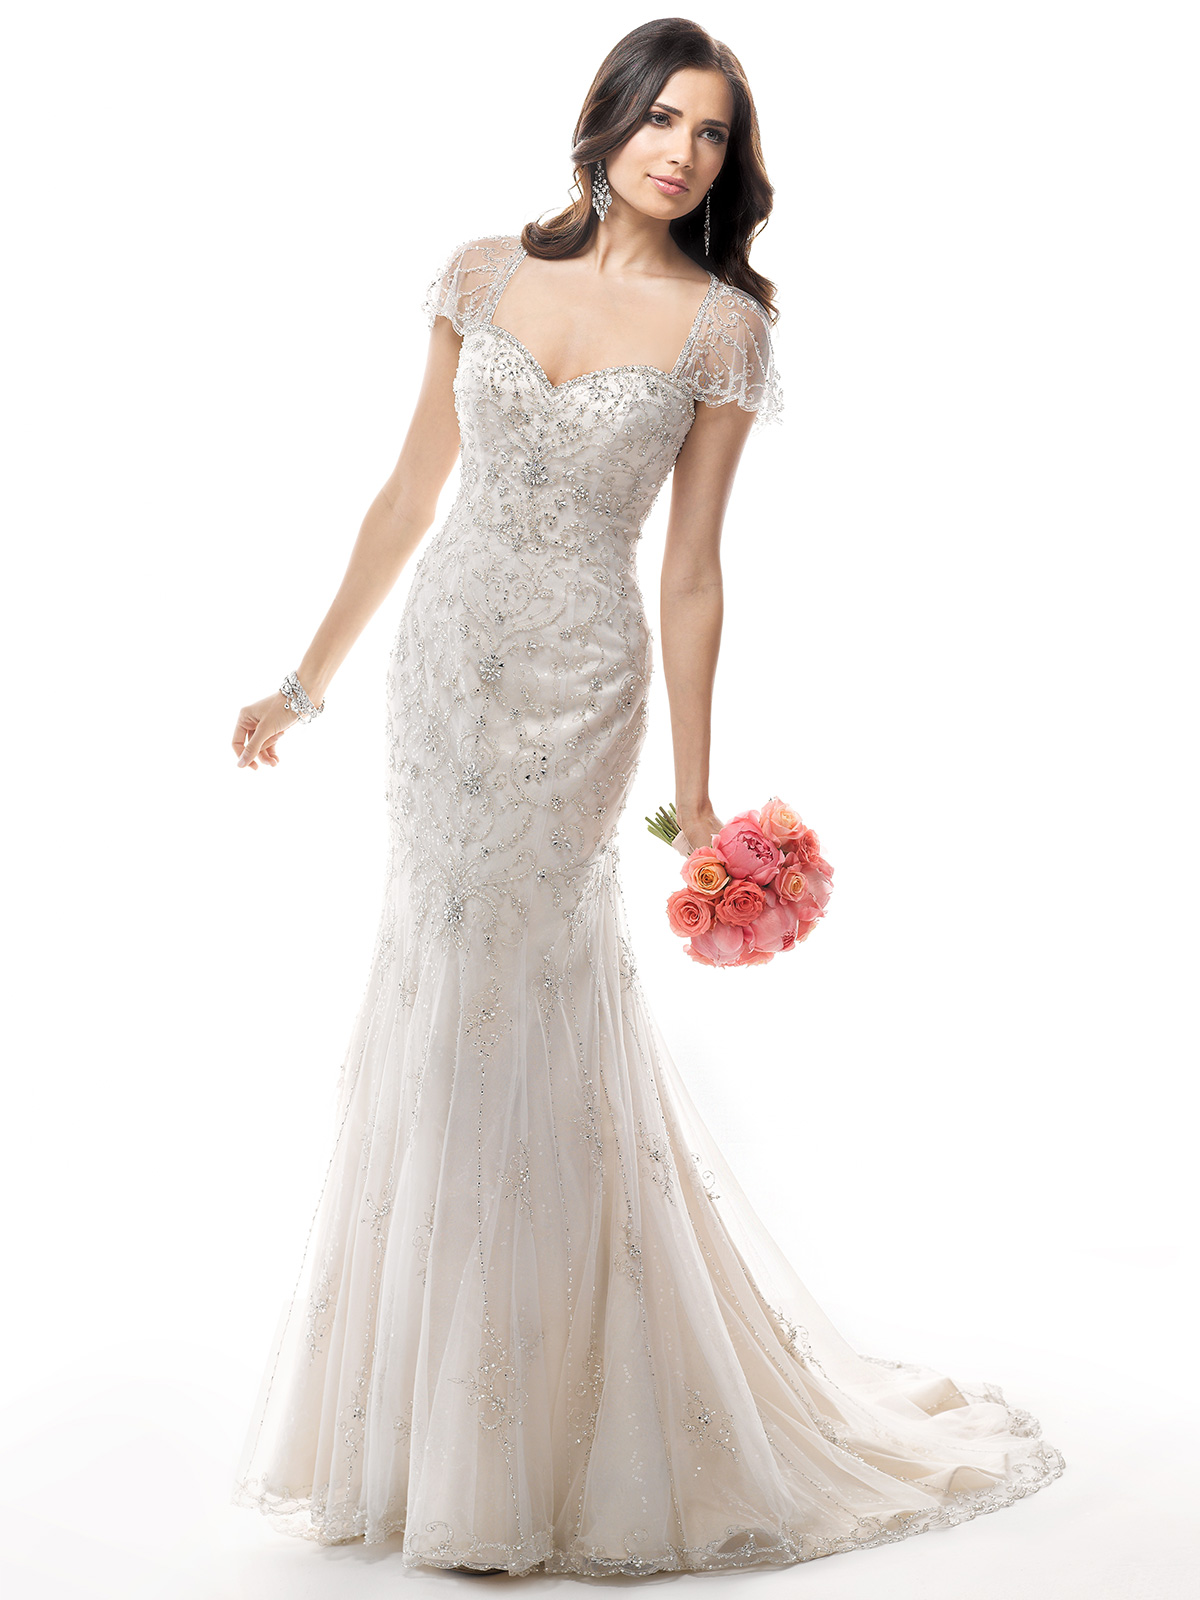 Janice Sung Wedding Sweetheart Beaded Tulle Bridal Gown Maggie Sottero Janelle